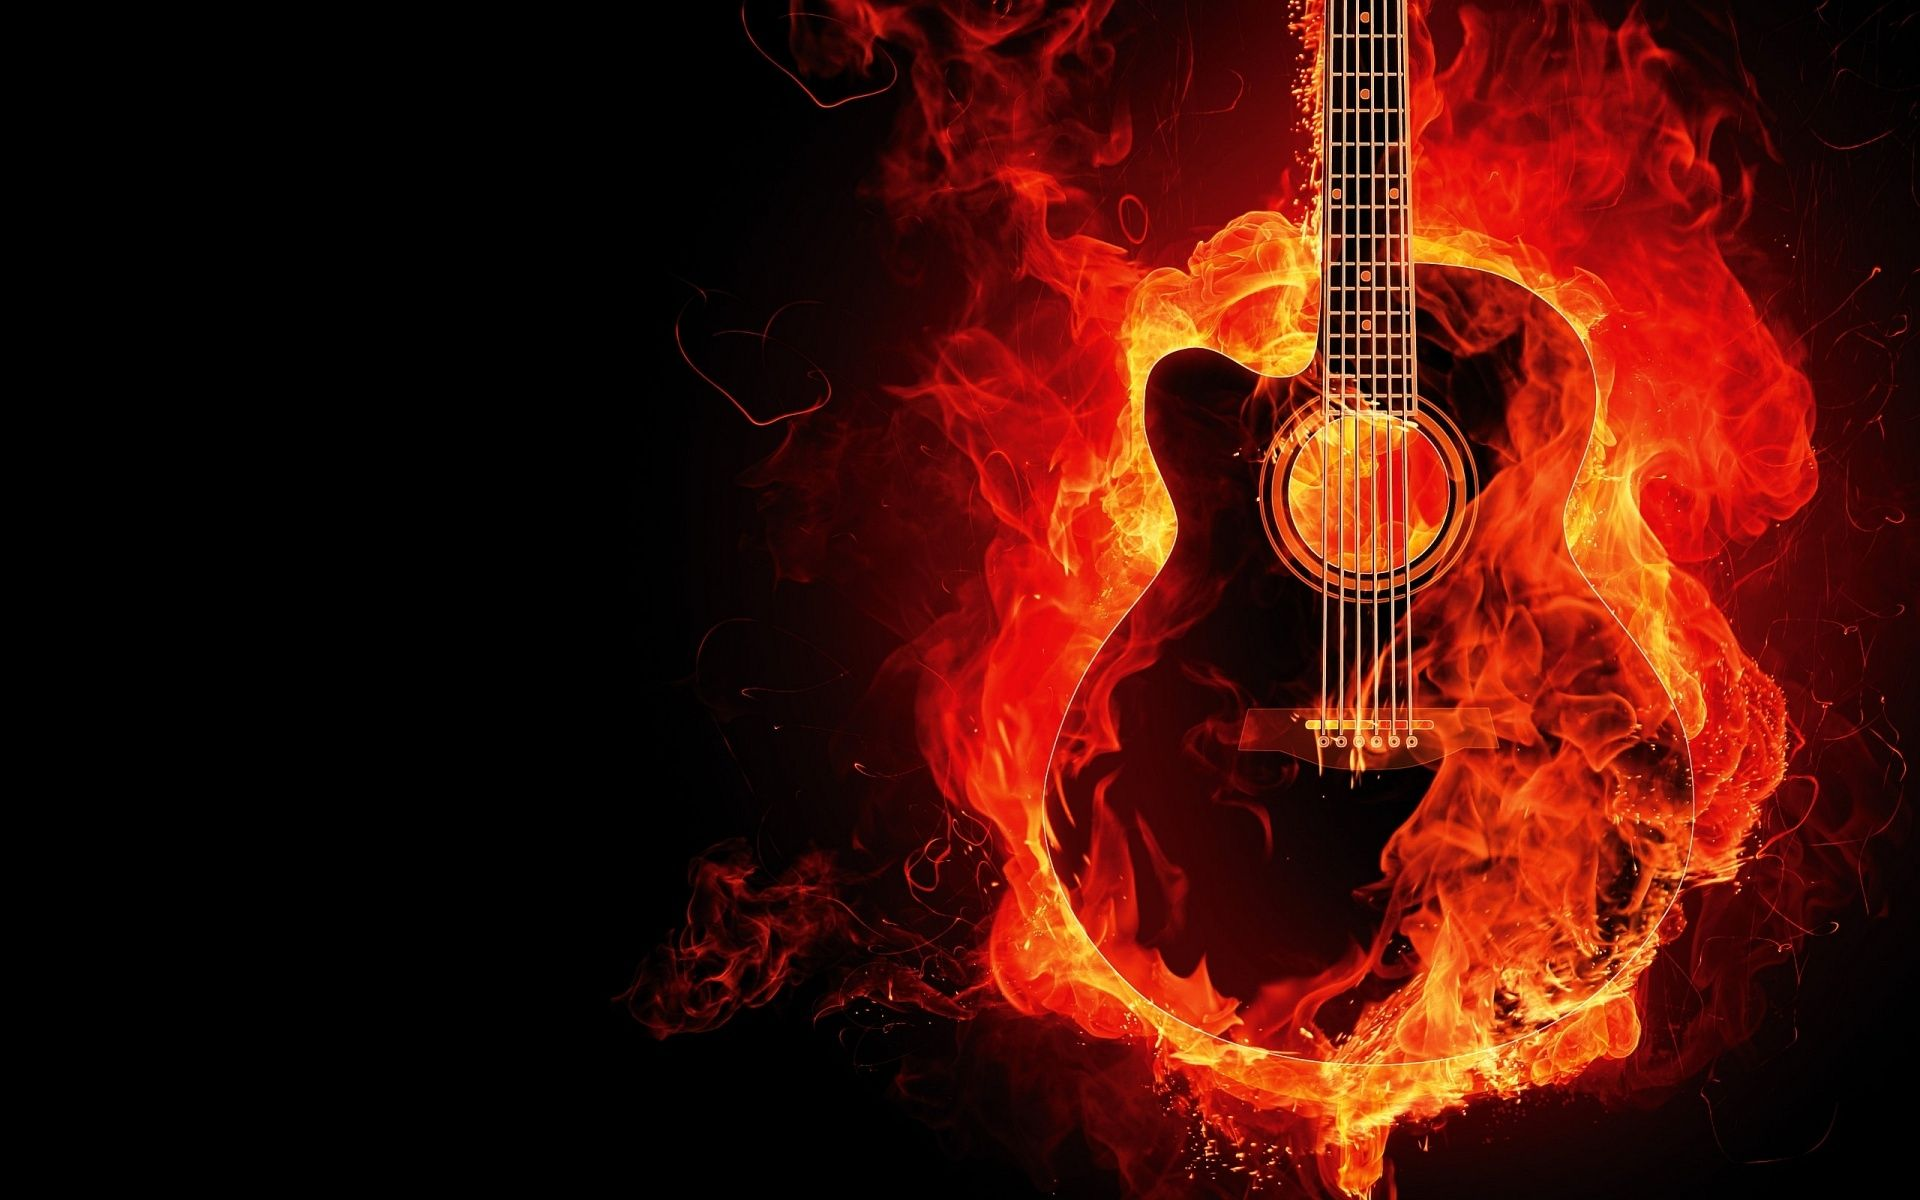 Free Cool Guitar Backgrounds Download Cool Guitar Backgrounds Wallpapersafari For Free Cool Guitar Backgrounds Download 1920 X 1200 Download Free C Gitar